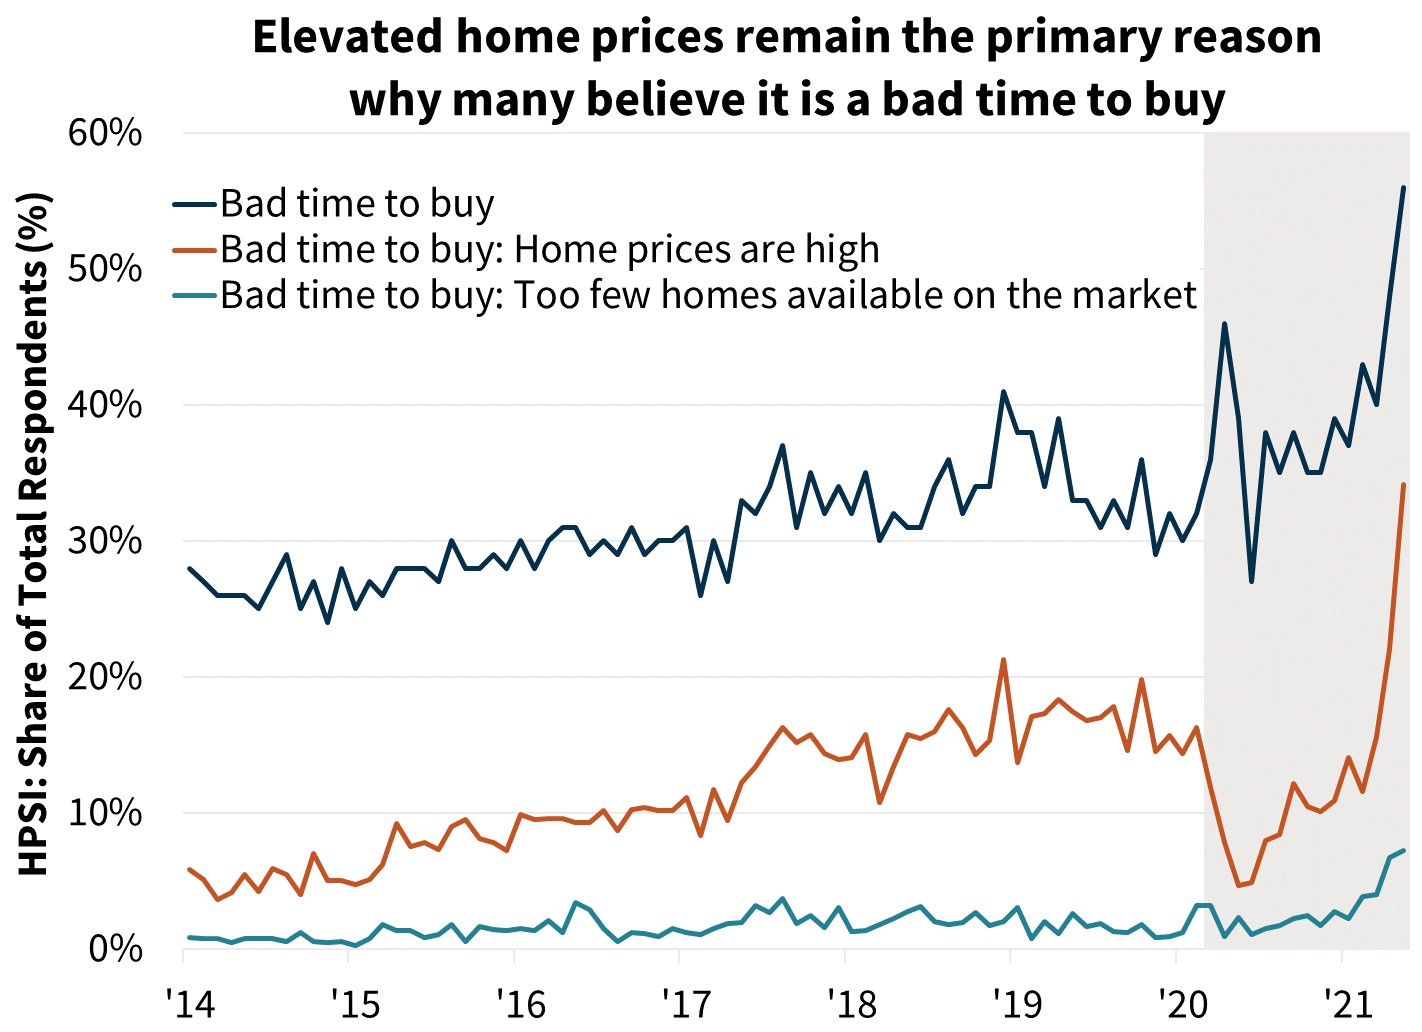 Elevated home prices remain the primary reason why many believe it is a bad time to buy